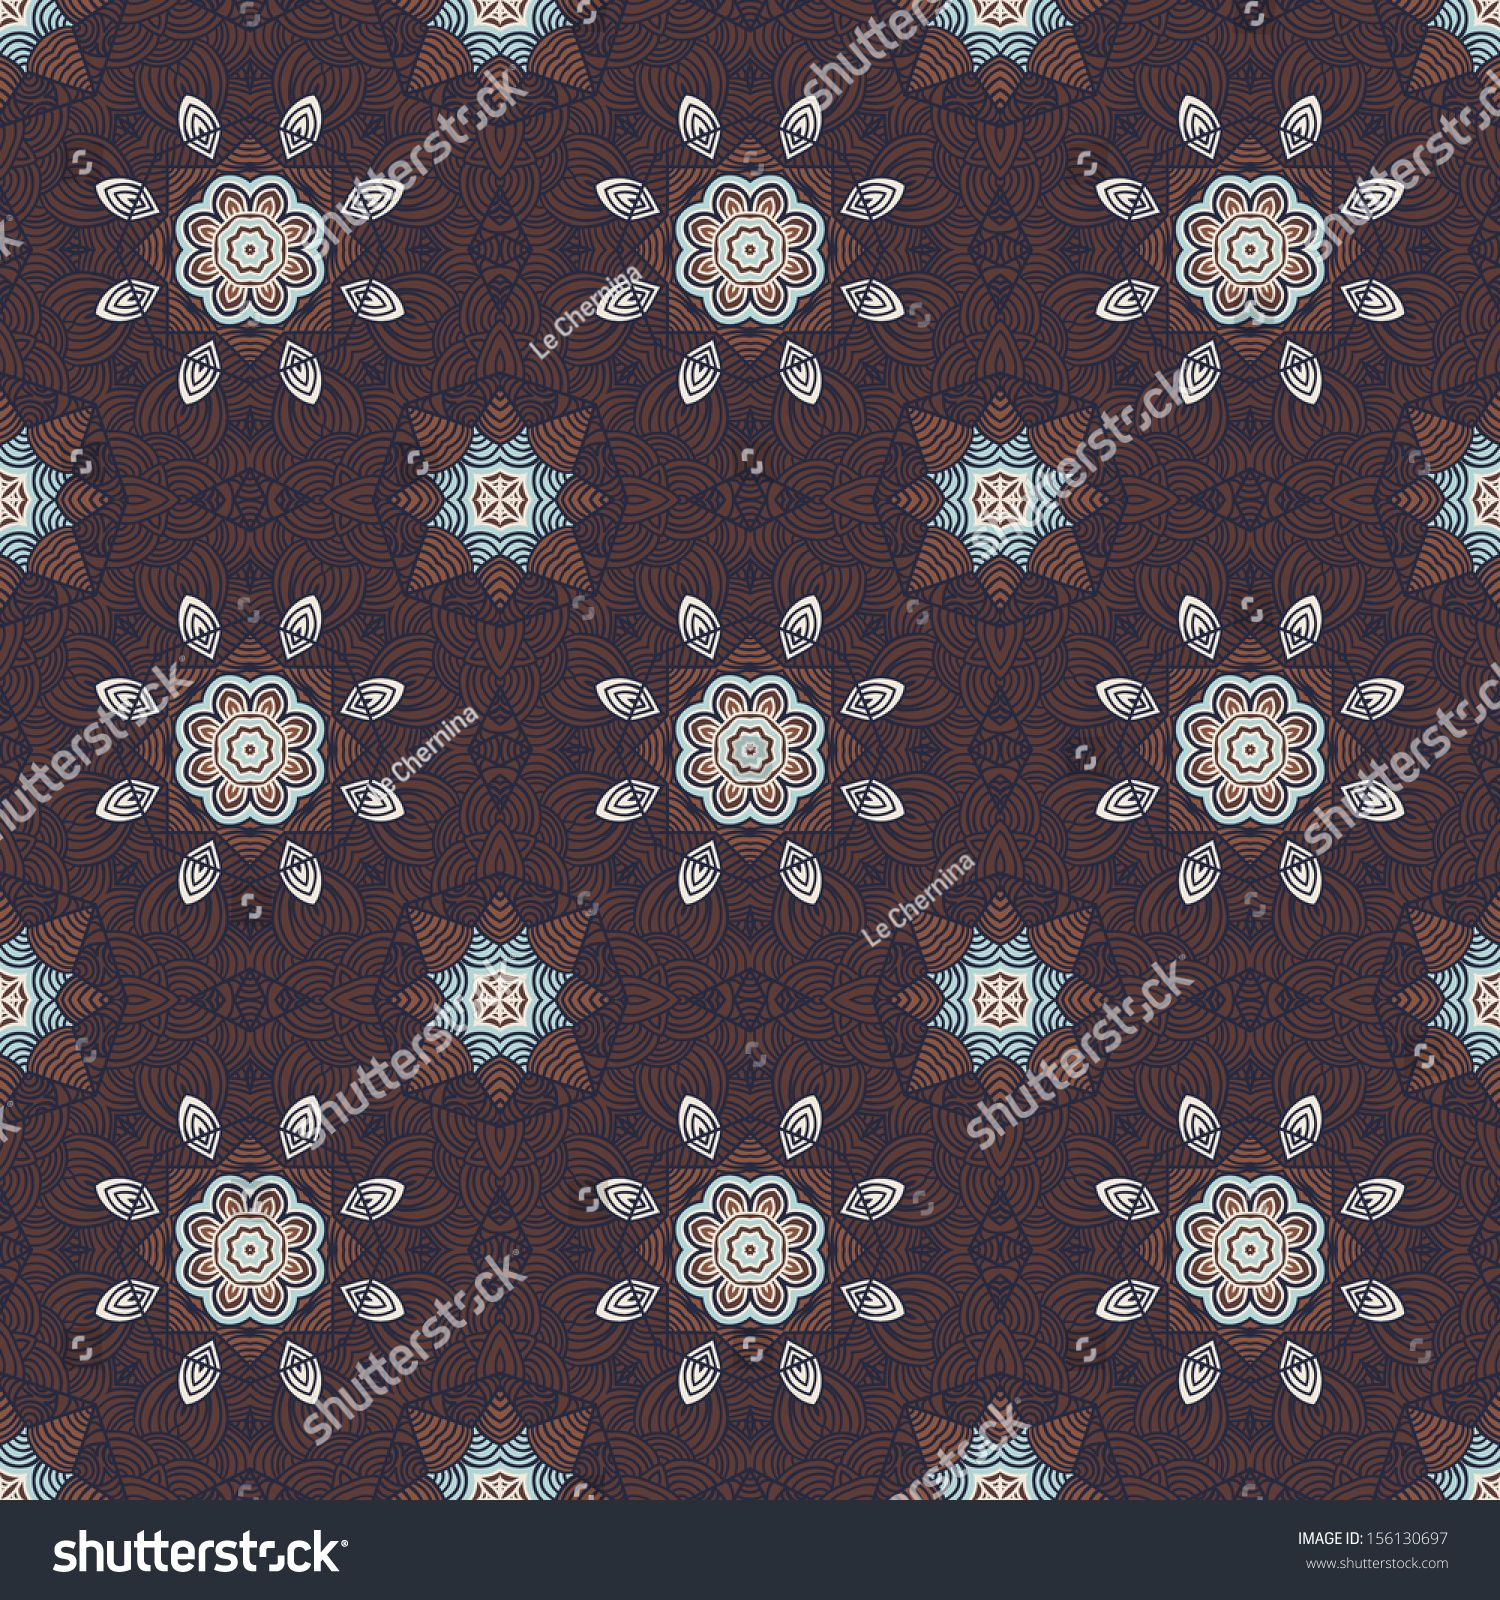 Manly seamless floral background in oriental style Best for textile or wrapping